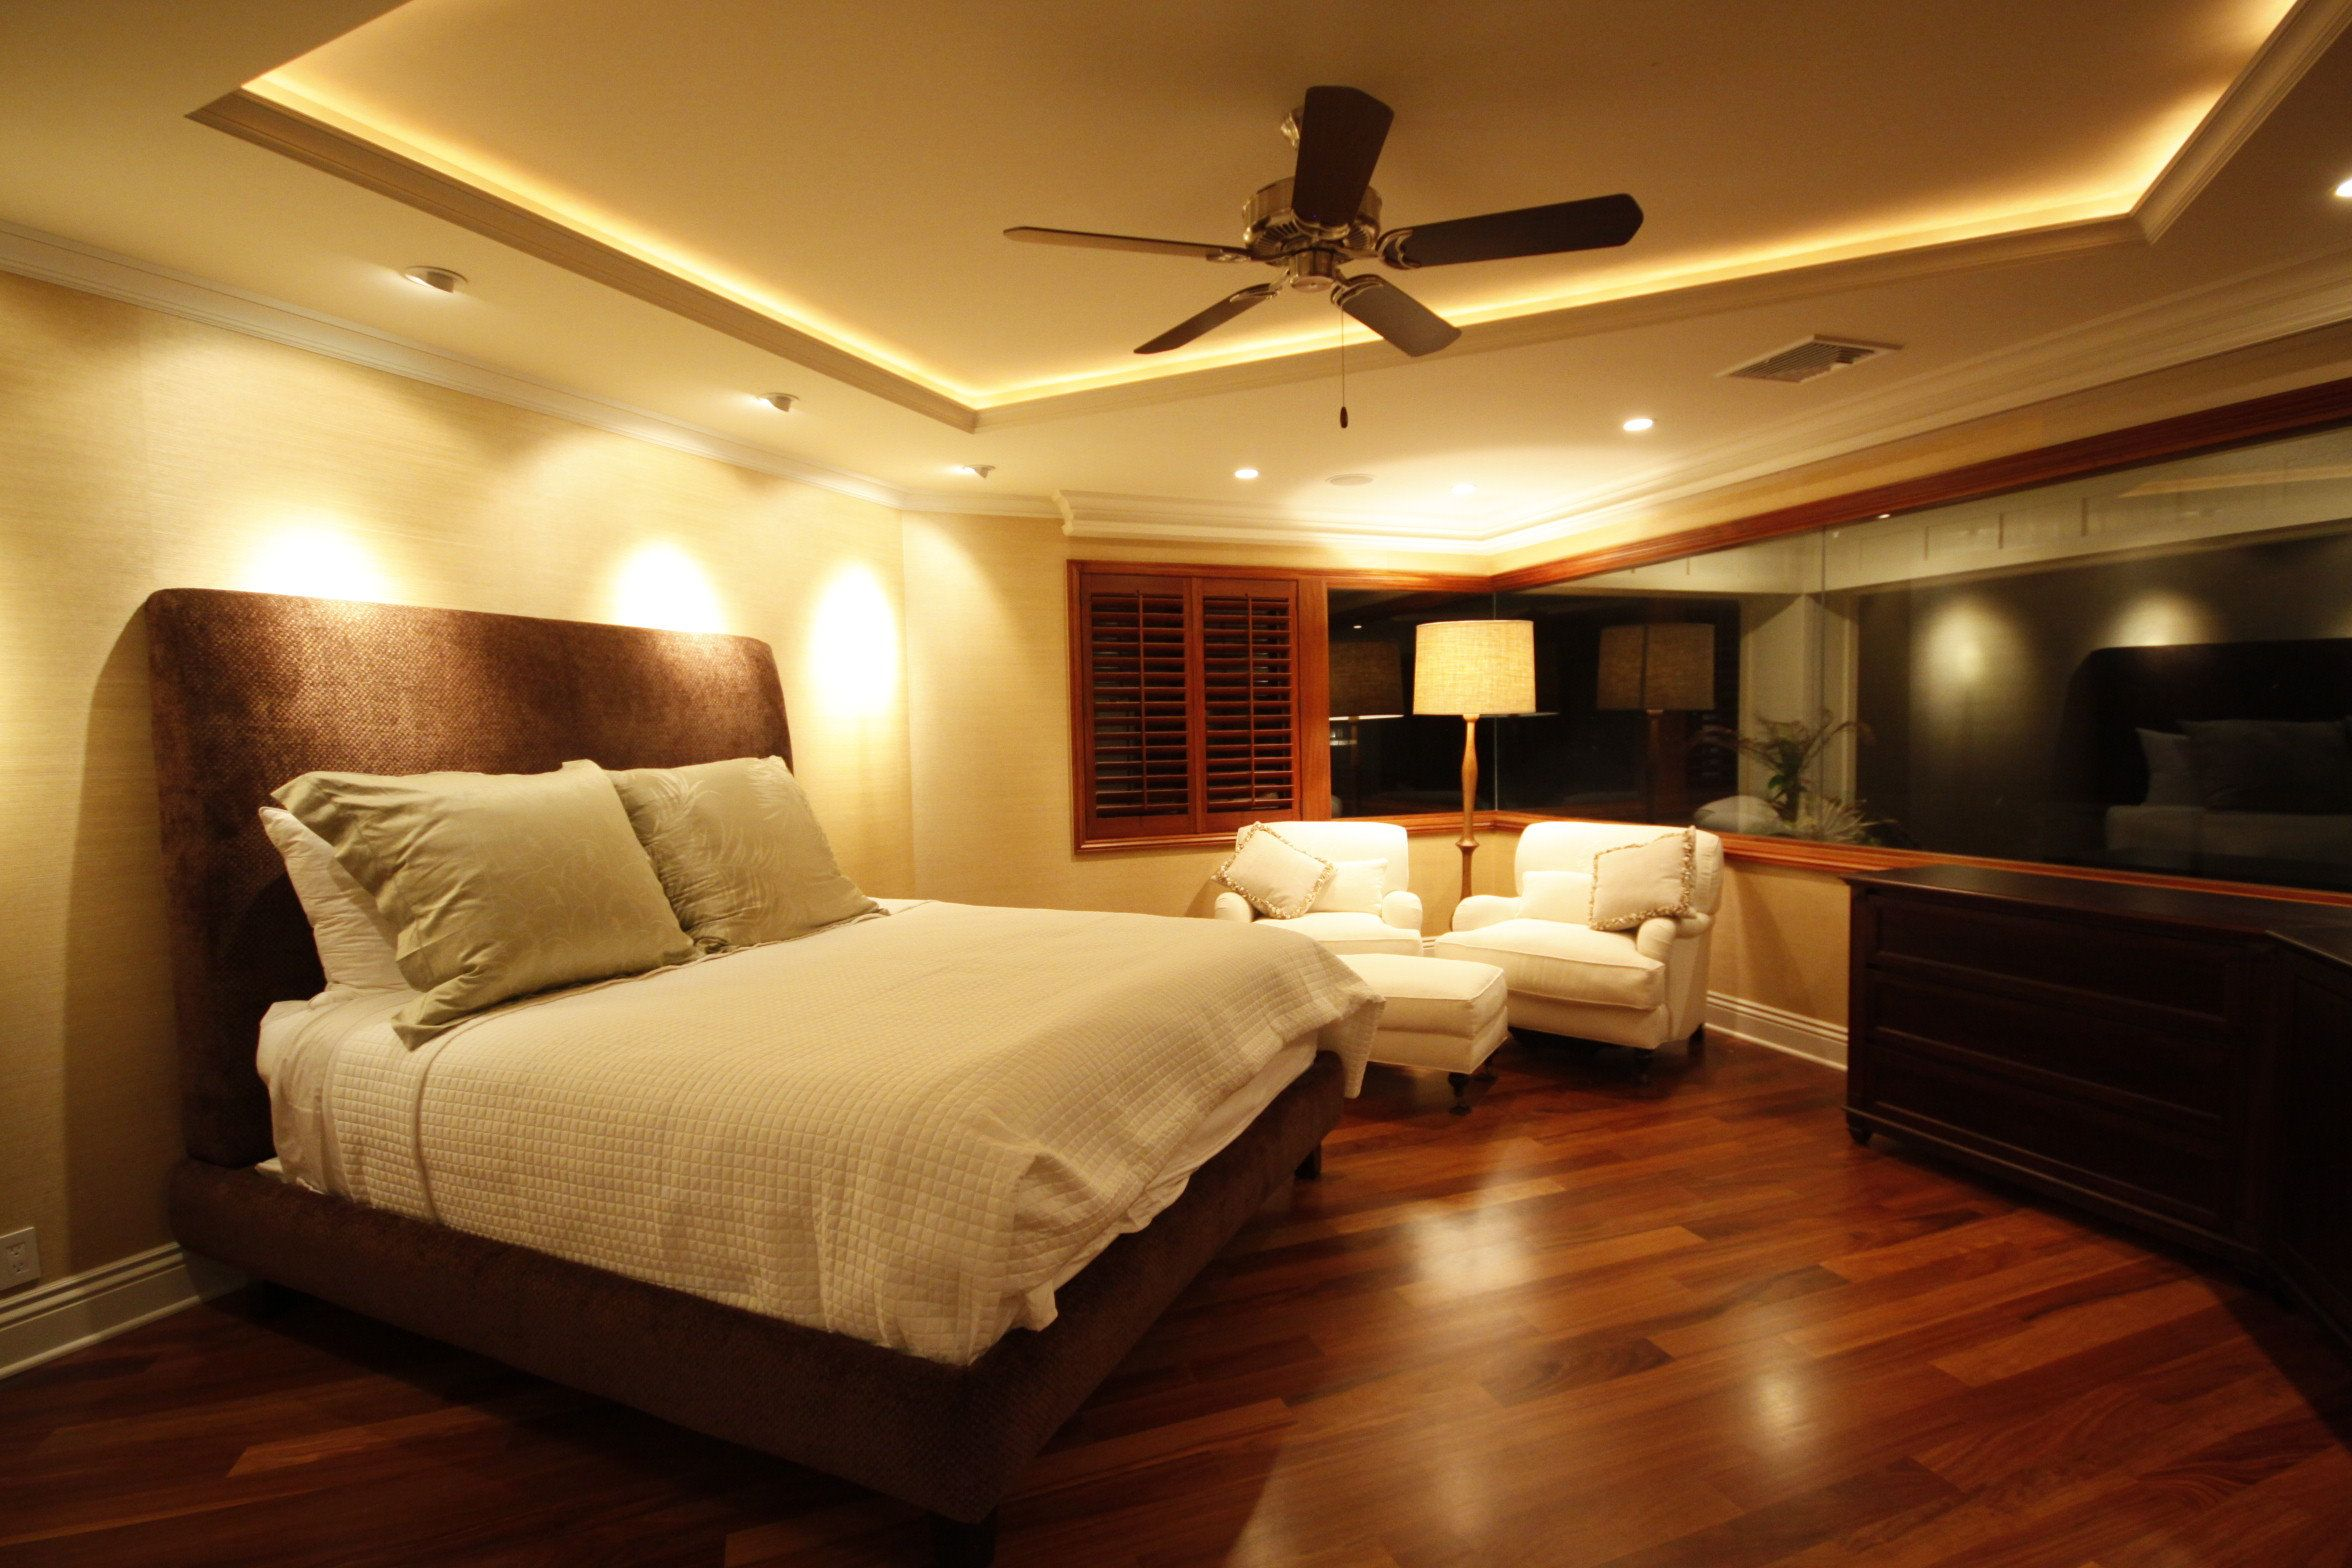 Appealing master bedroom modern decor with wooden floors for Bedroom designs hd images